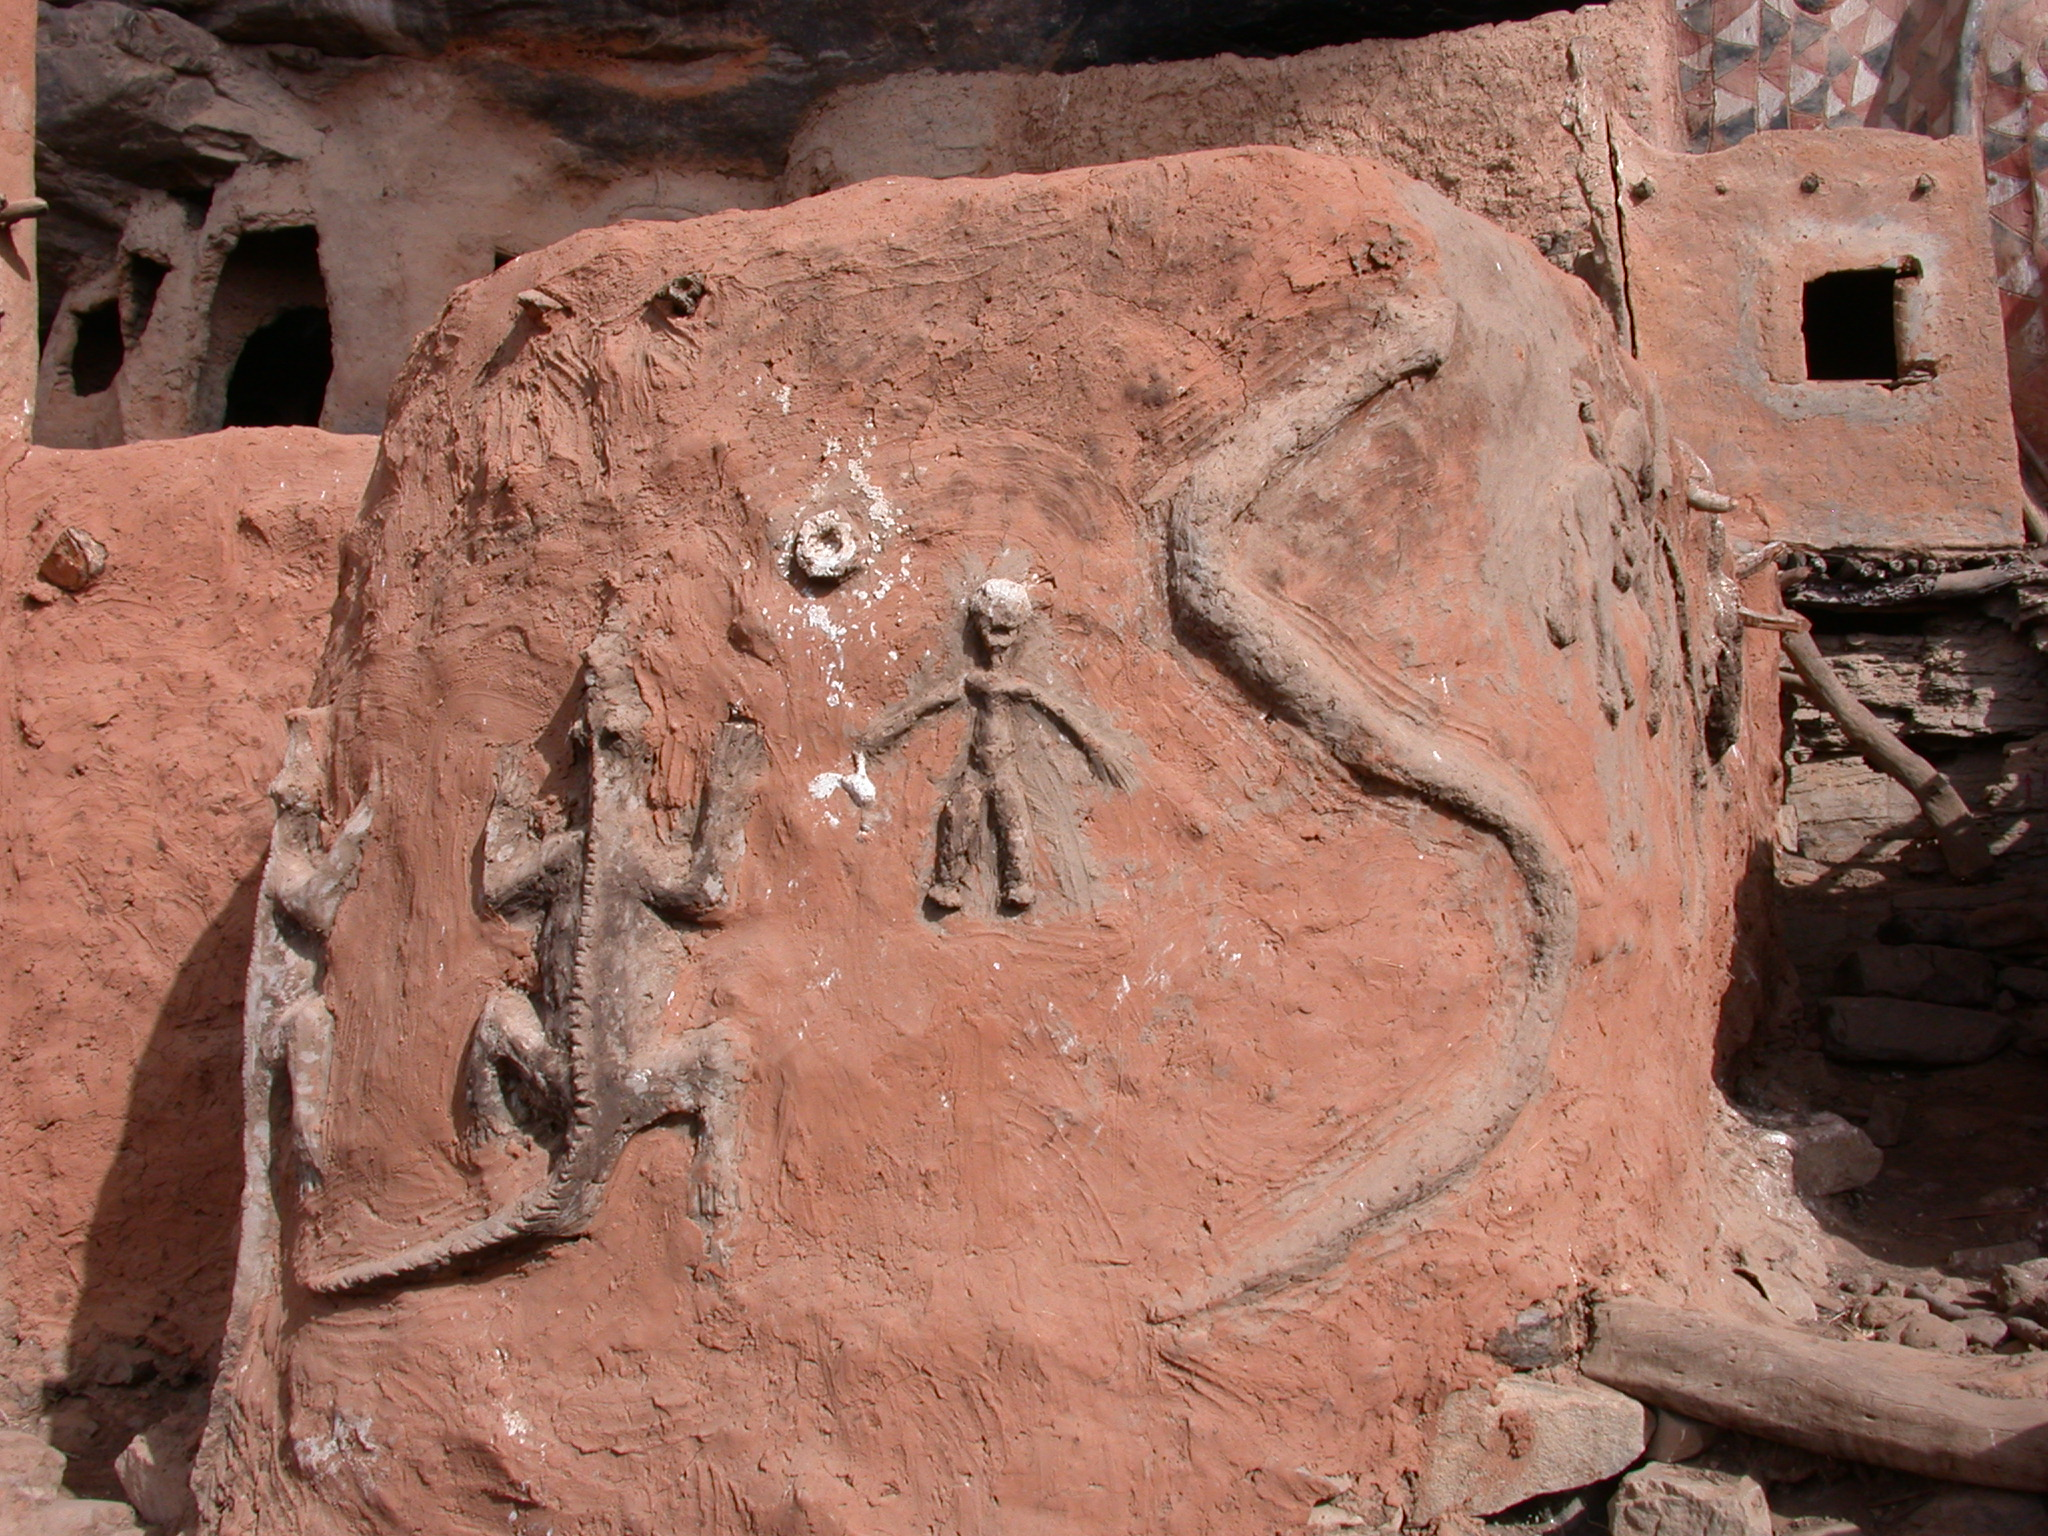 Ritual Crocodile, Human, and Serpent Symbols in Falaise Escarpment, Tellem Village, Dogon Country, Mali